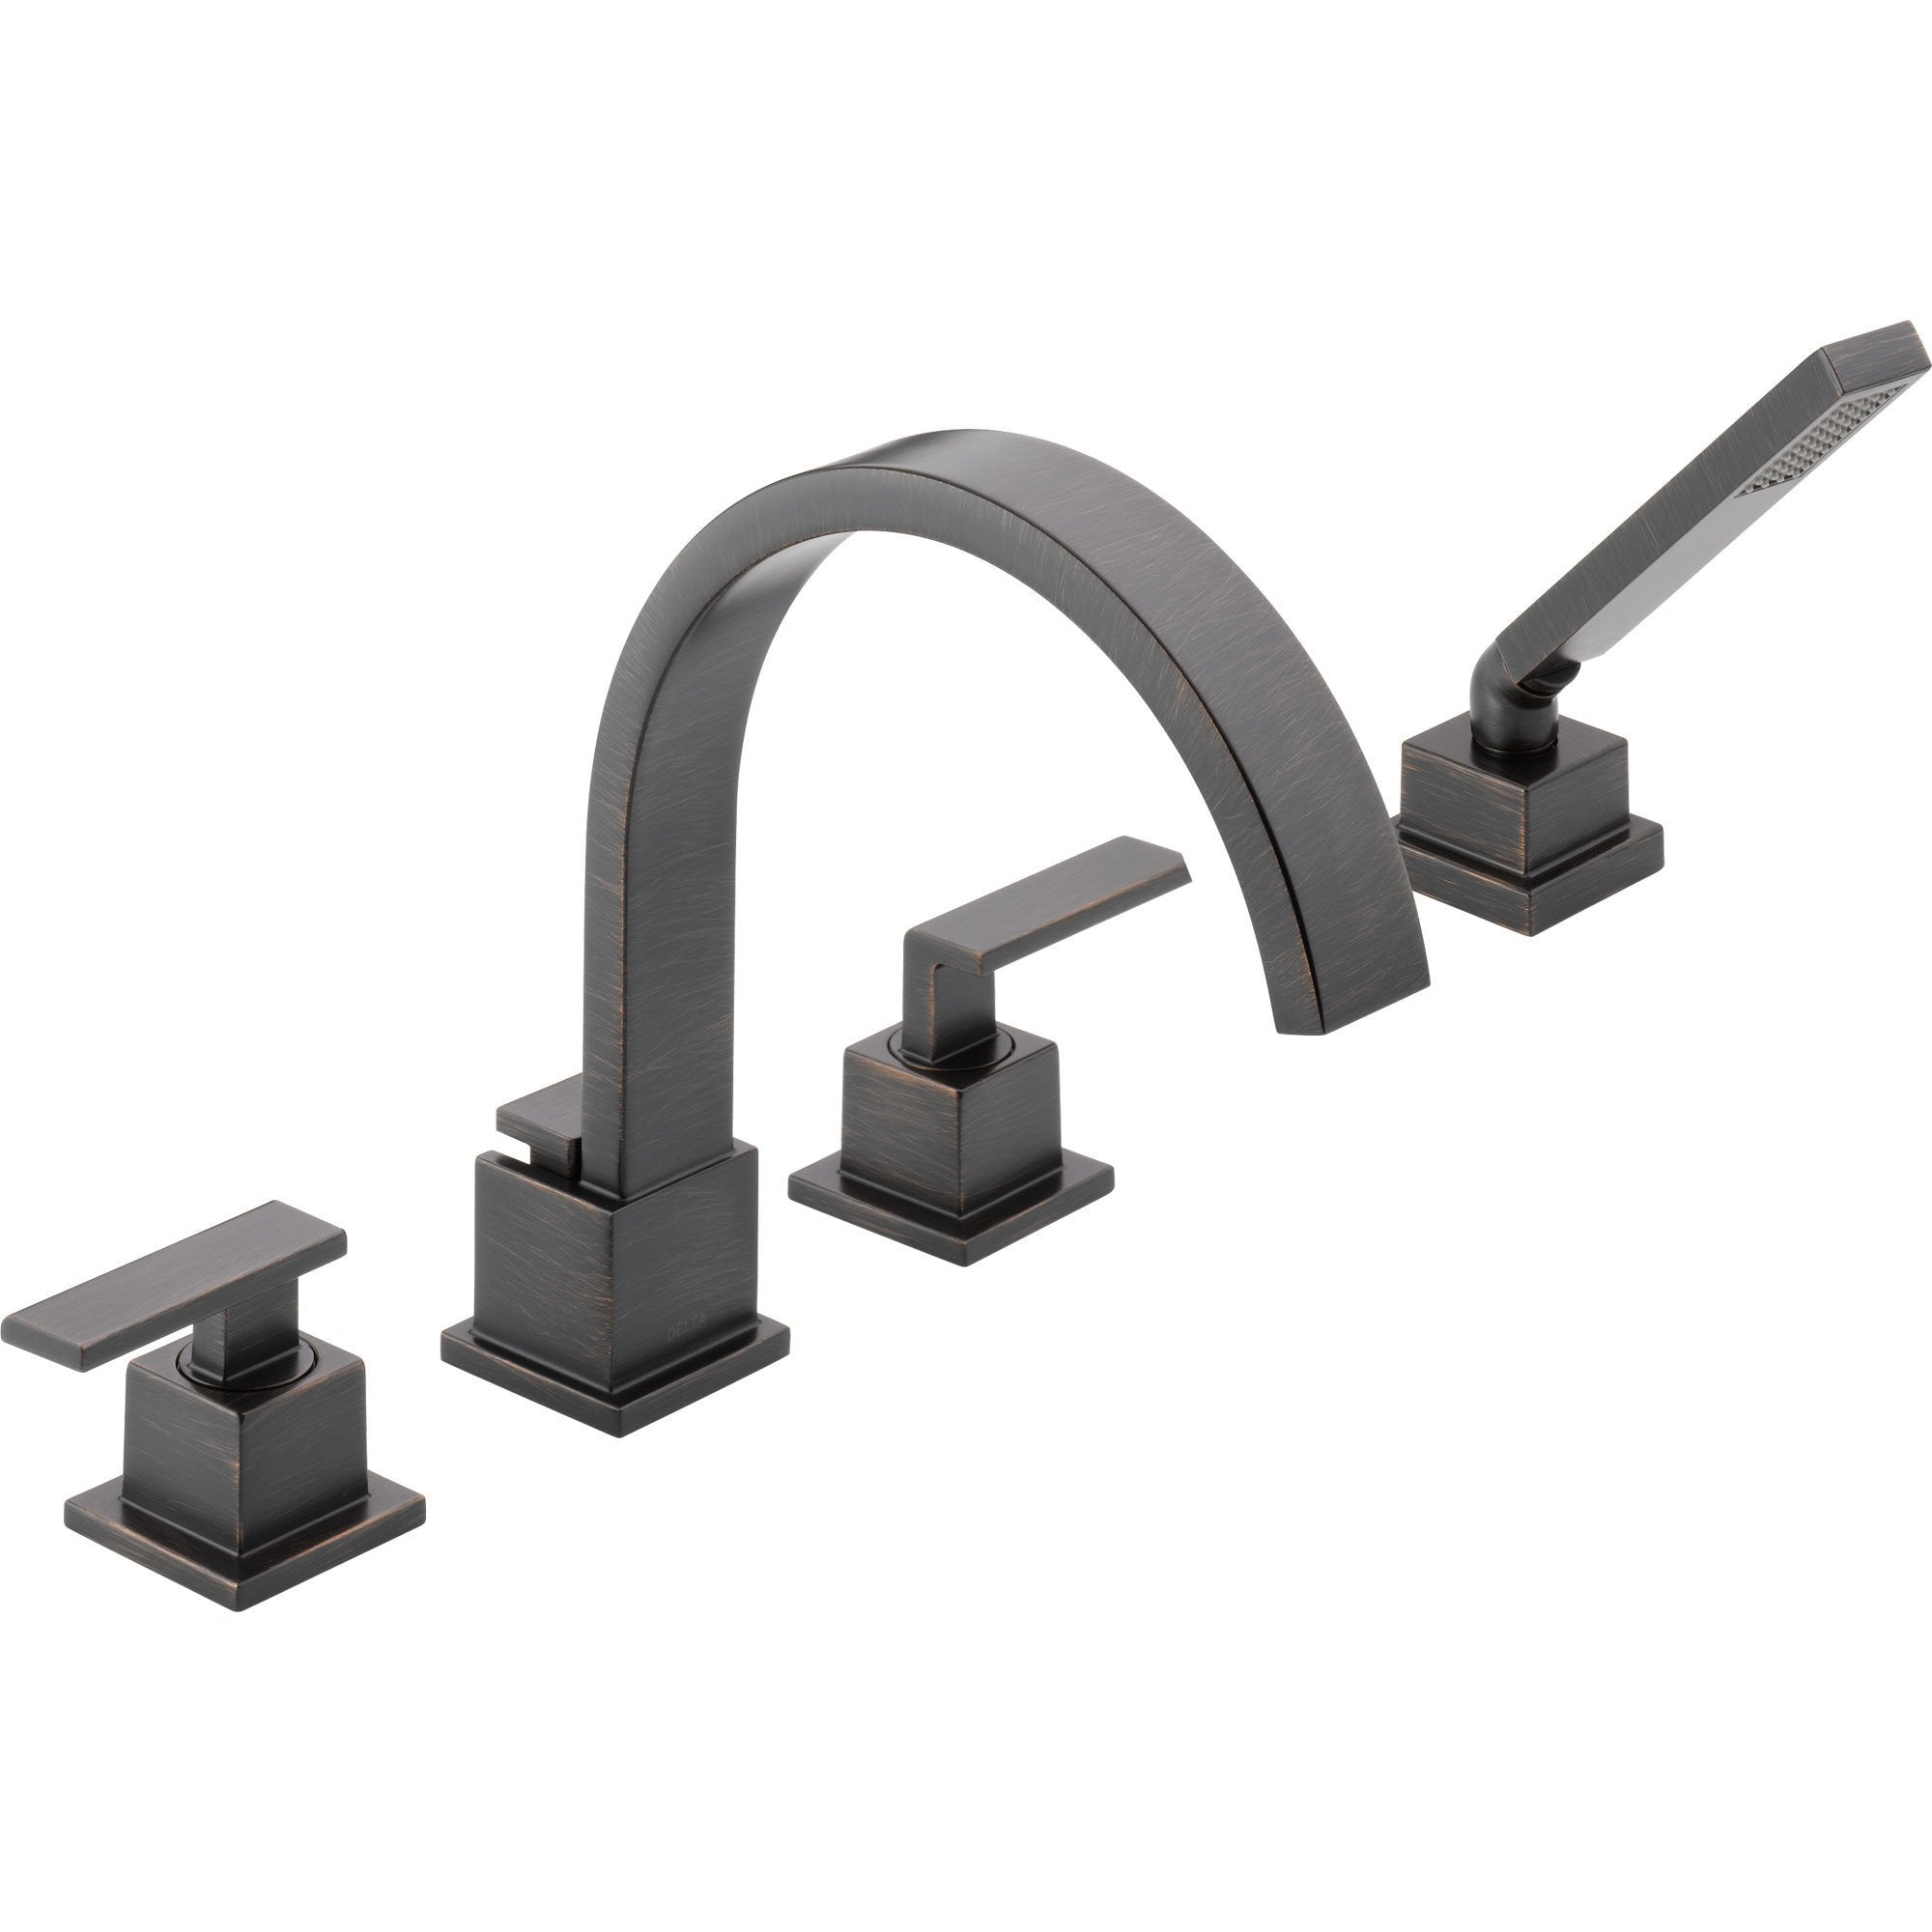 Delta Vero Venetian Bronze Roman Tub Faucet Trim Kit with Handshower 555960